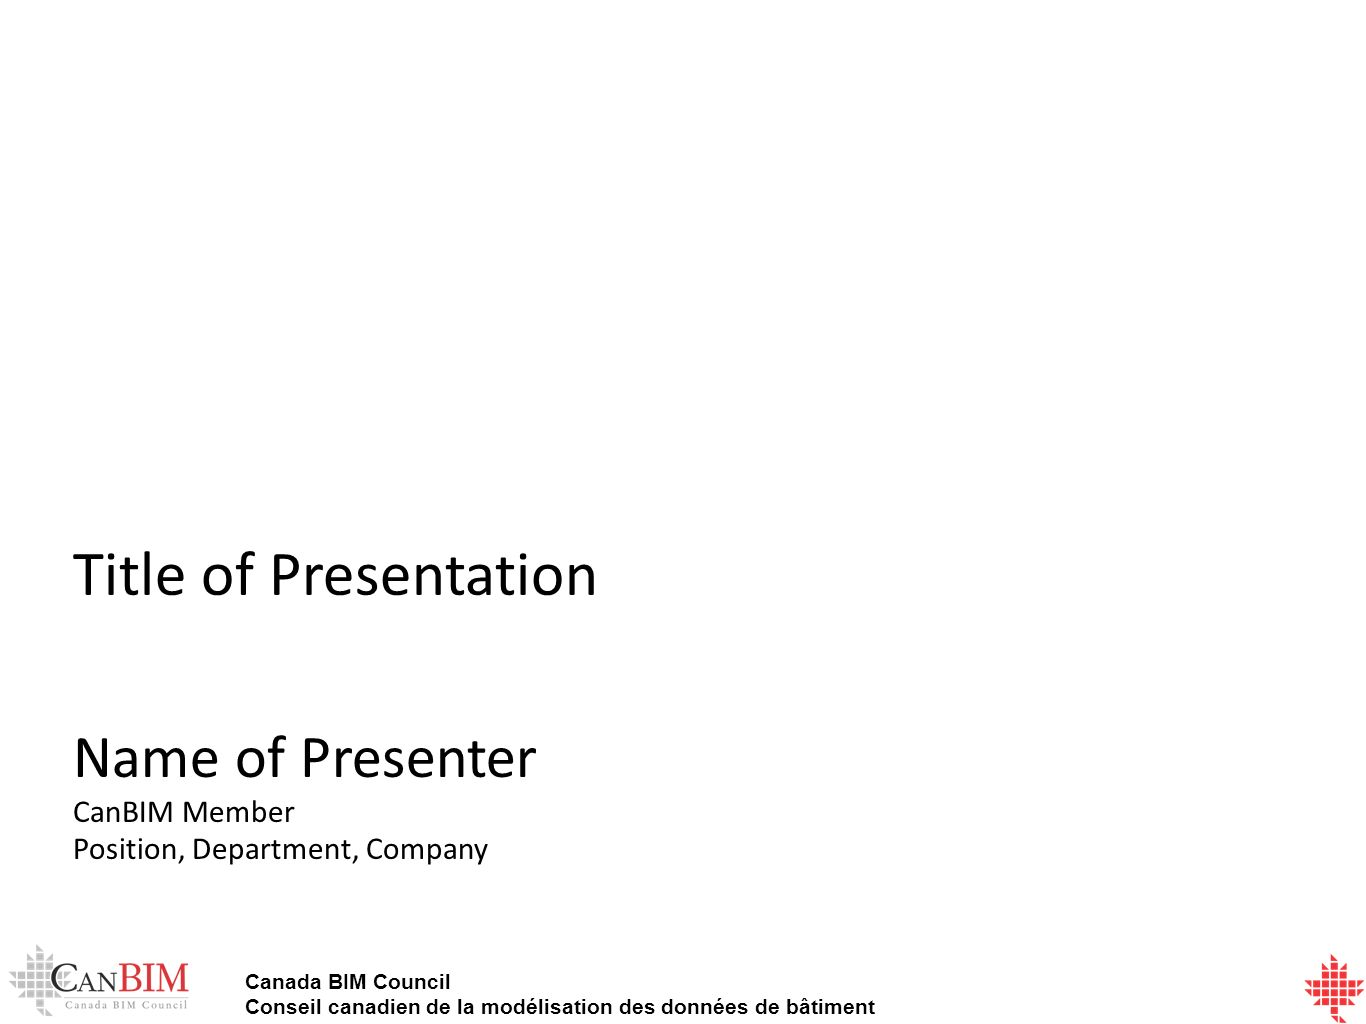 Canada BIM Council Conseil canadien de la modélisation des données de bâtiment Title of Presentation Name of Presenter CanBIM Member Position, Department, Company